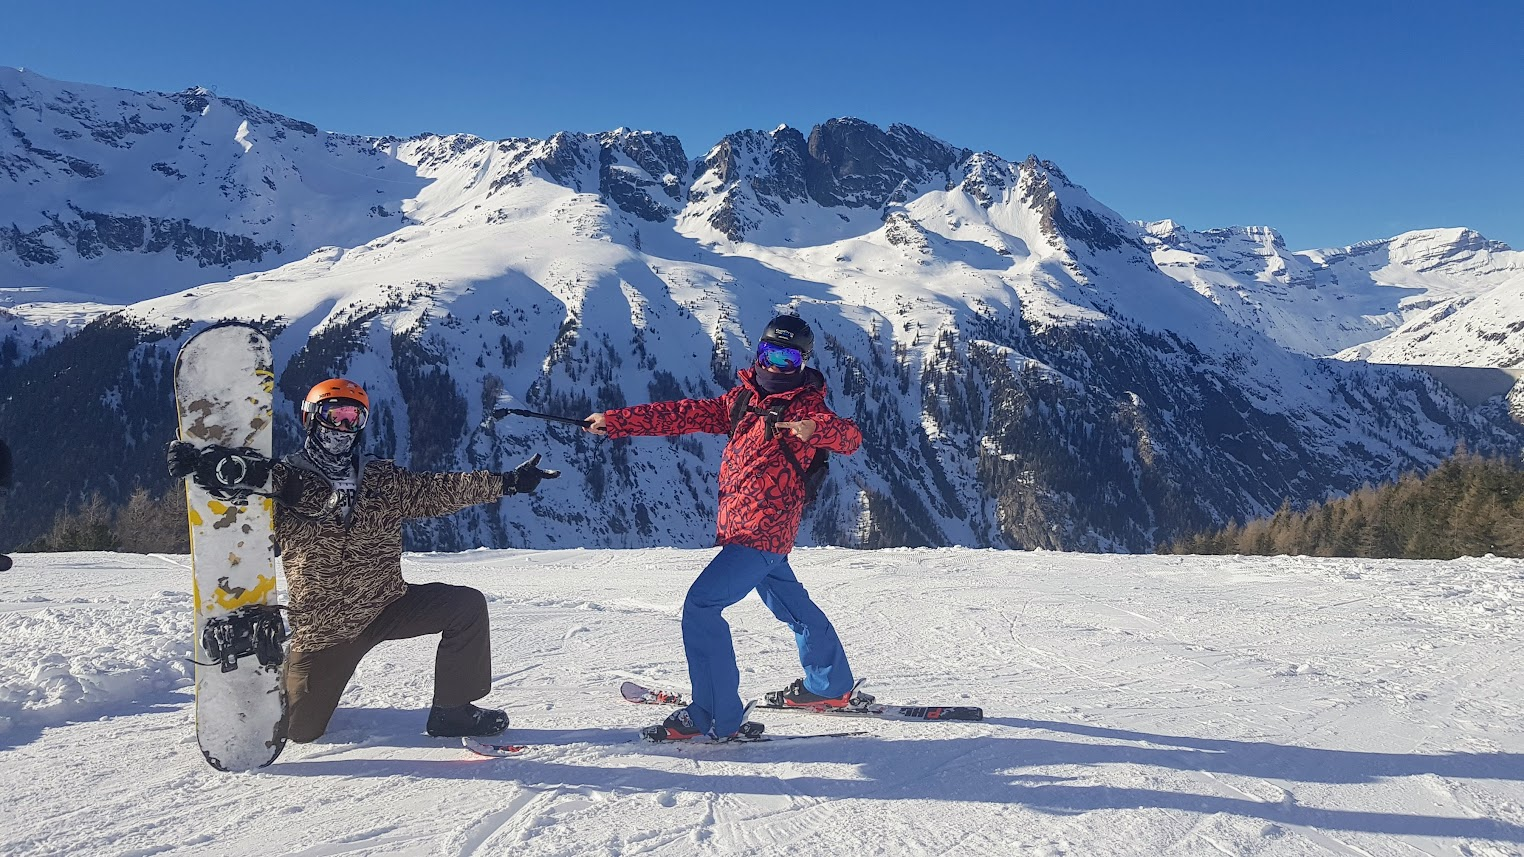 Snowboard and Ski in Chamonix